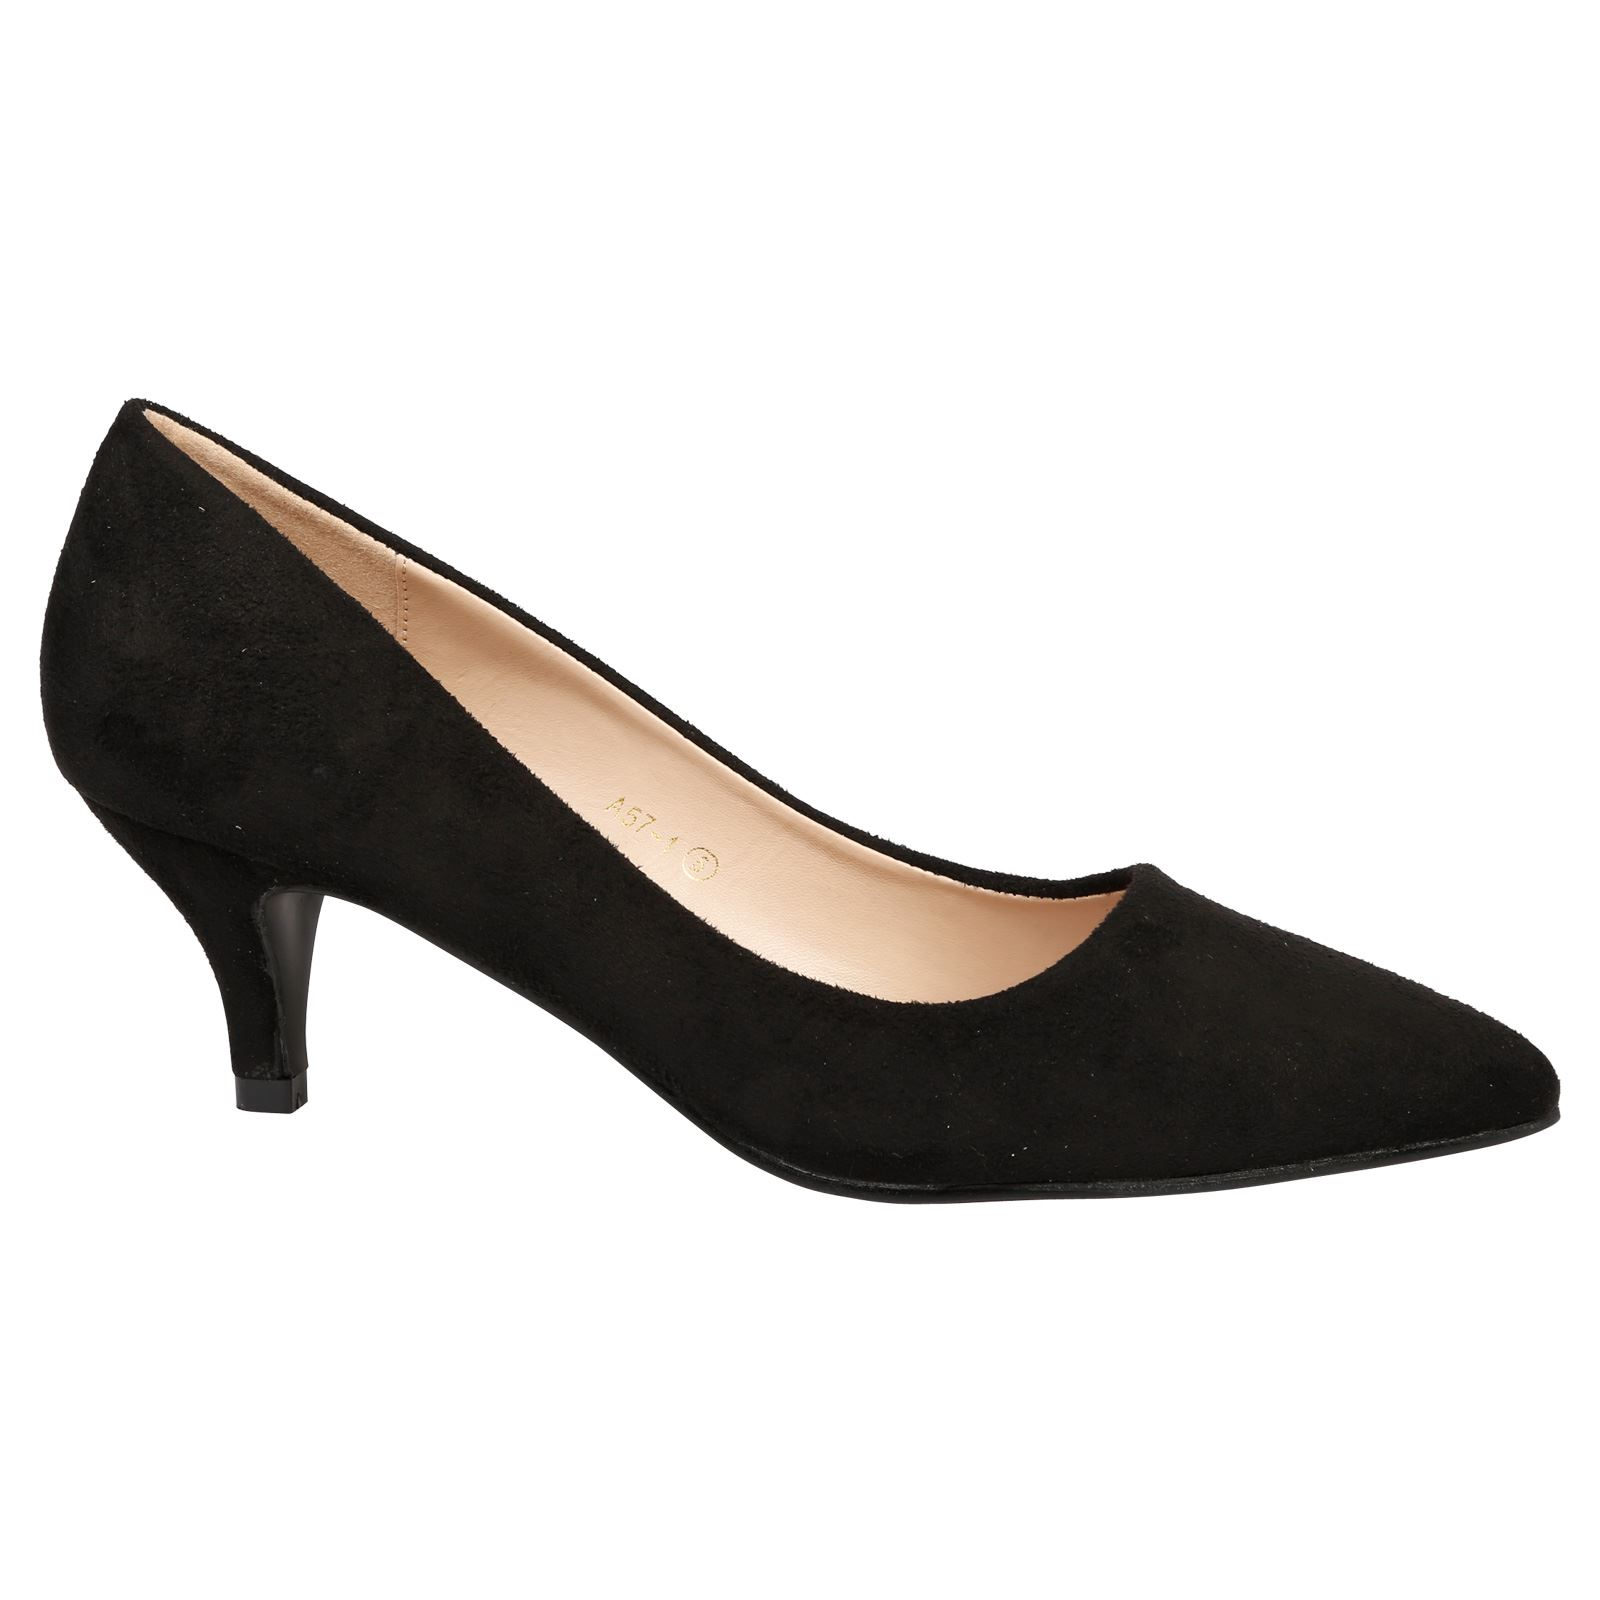 Womens Ladies Low Mid High Heel Pointed Court Smart Party Office Work Stiletto Shoes Pumps Size LT_7